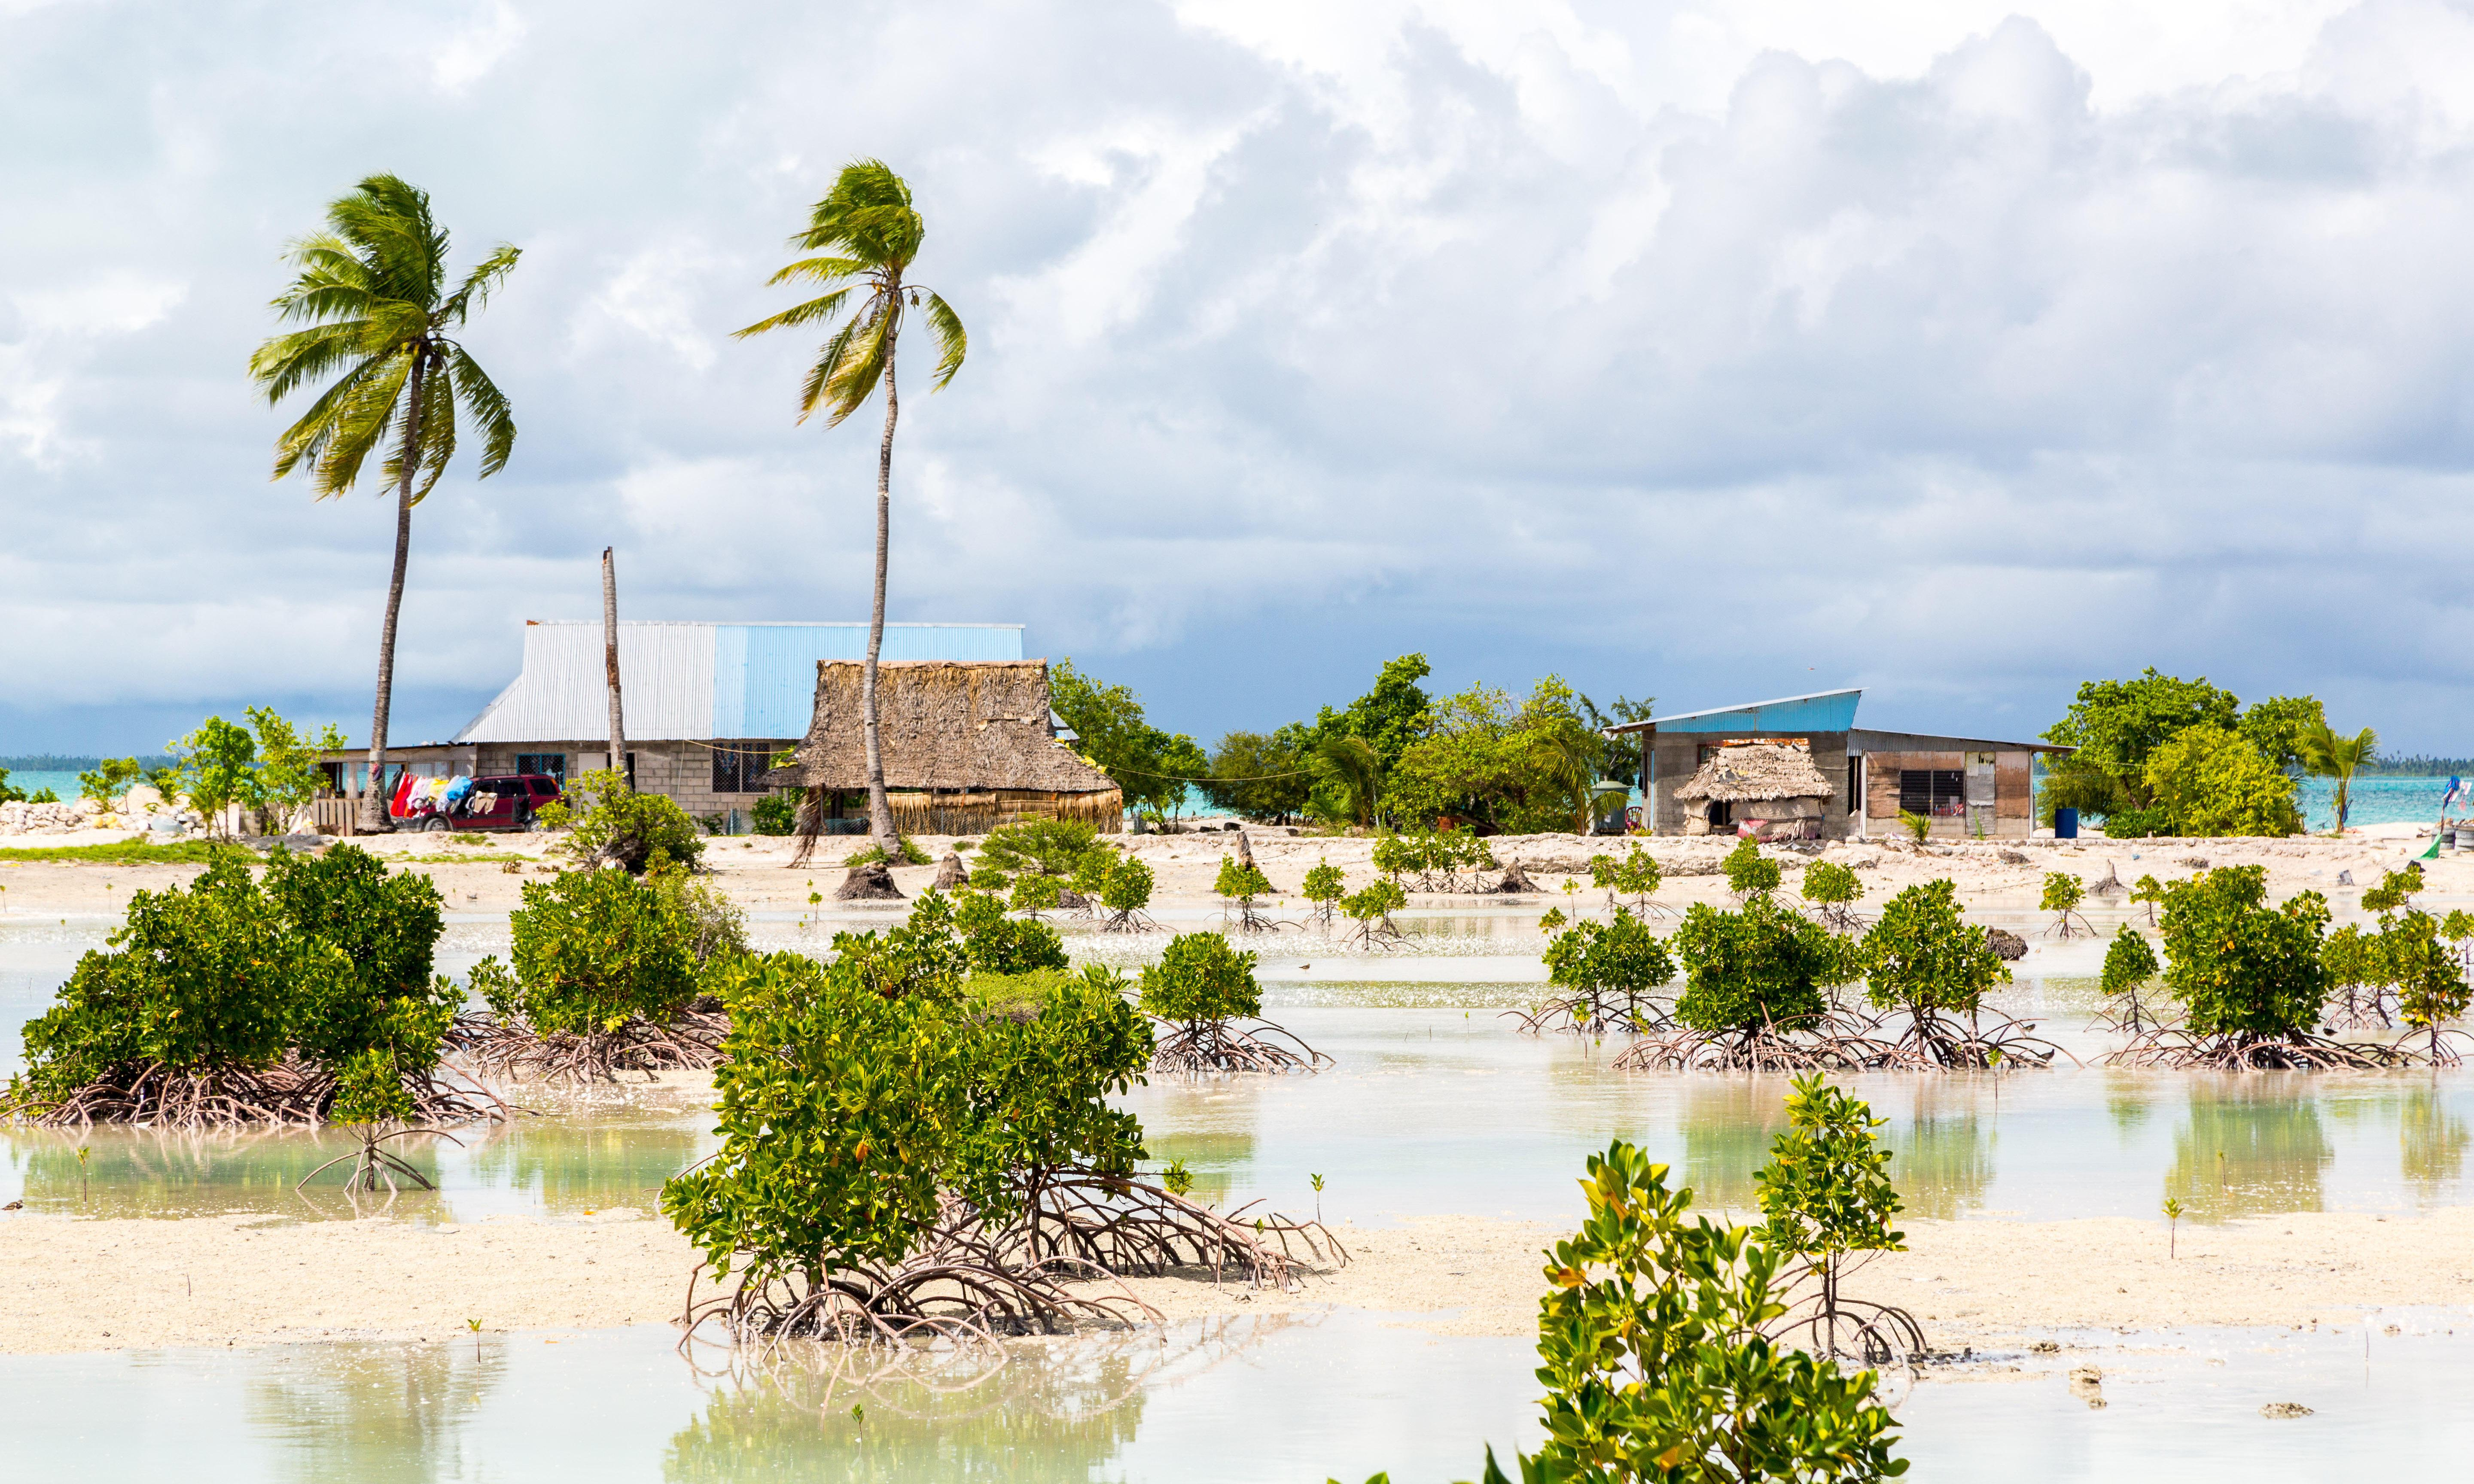 Climate refugees can't be returned home, says landmark UN human rights ruling